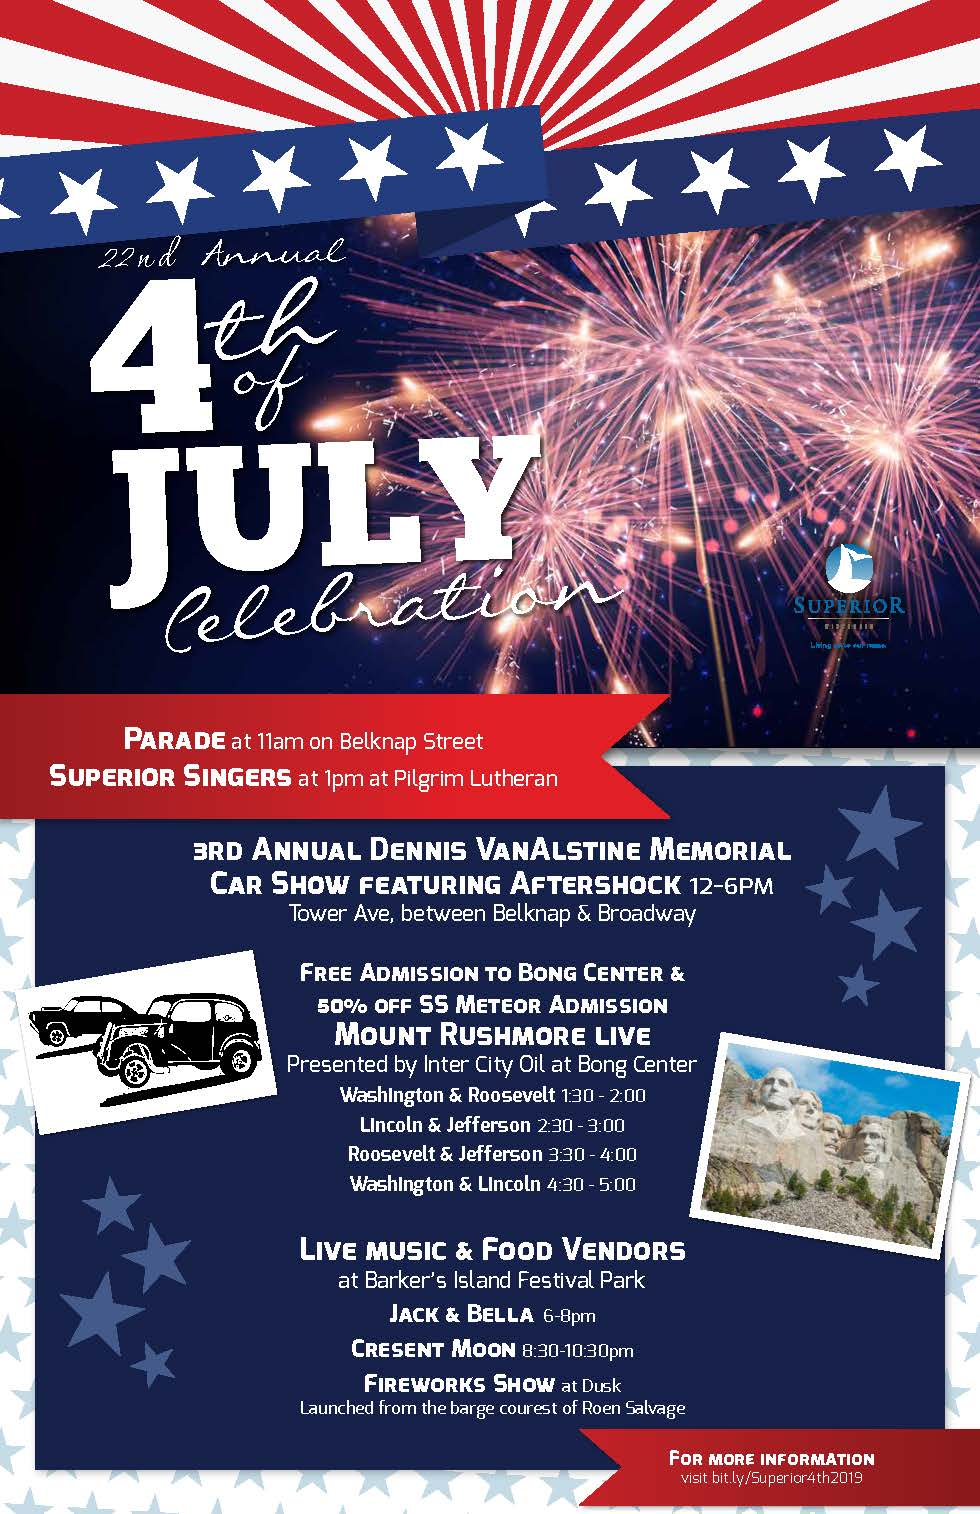 4th of July Flyer for 2019 listing activities